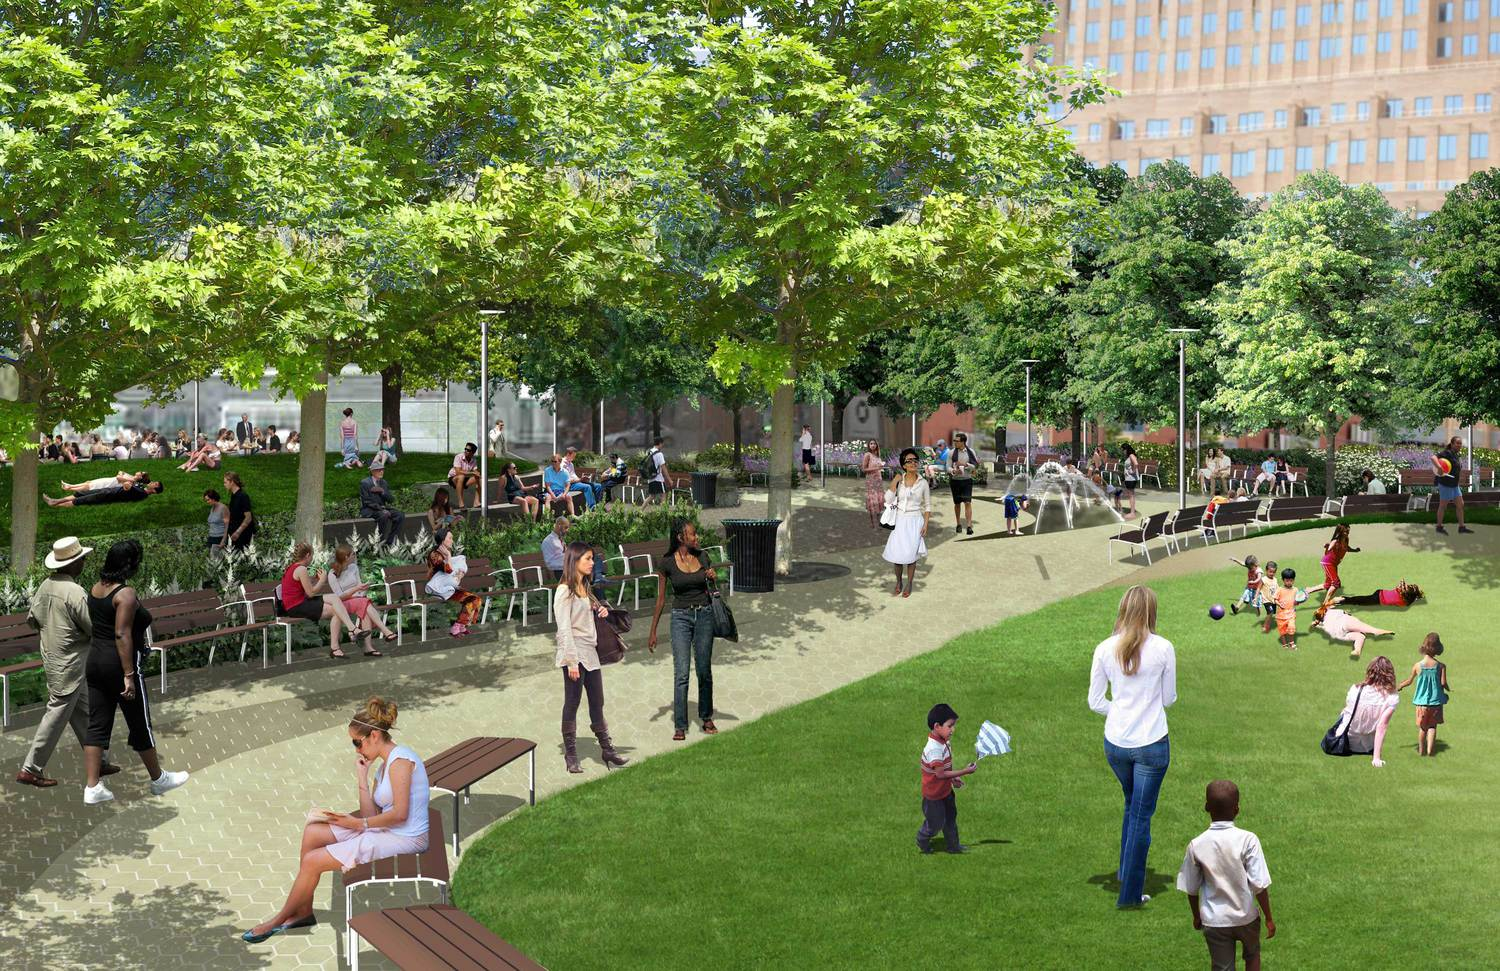 A rendering of Downtown Brooklyn's future green space, Willoughby Square.